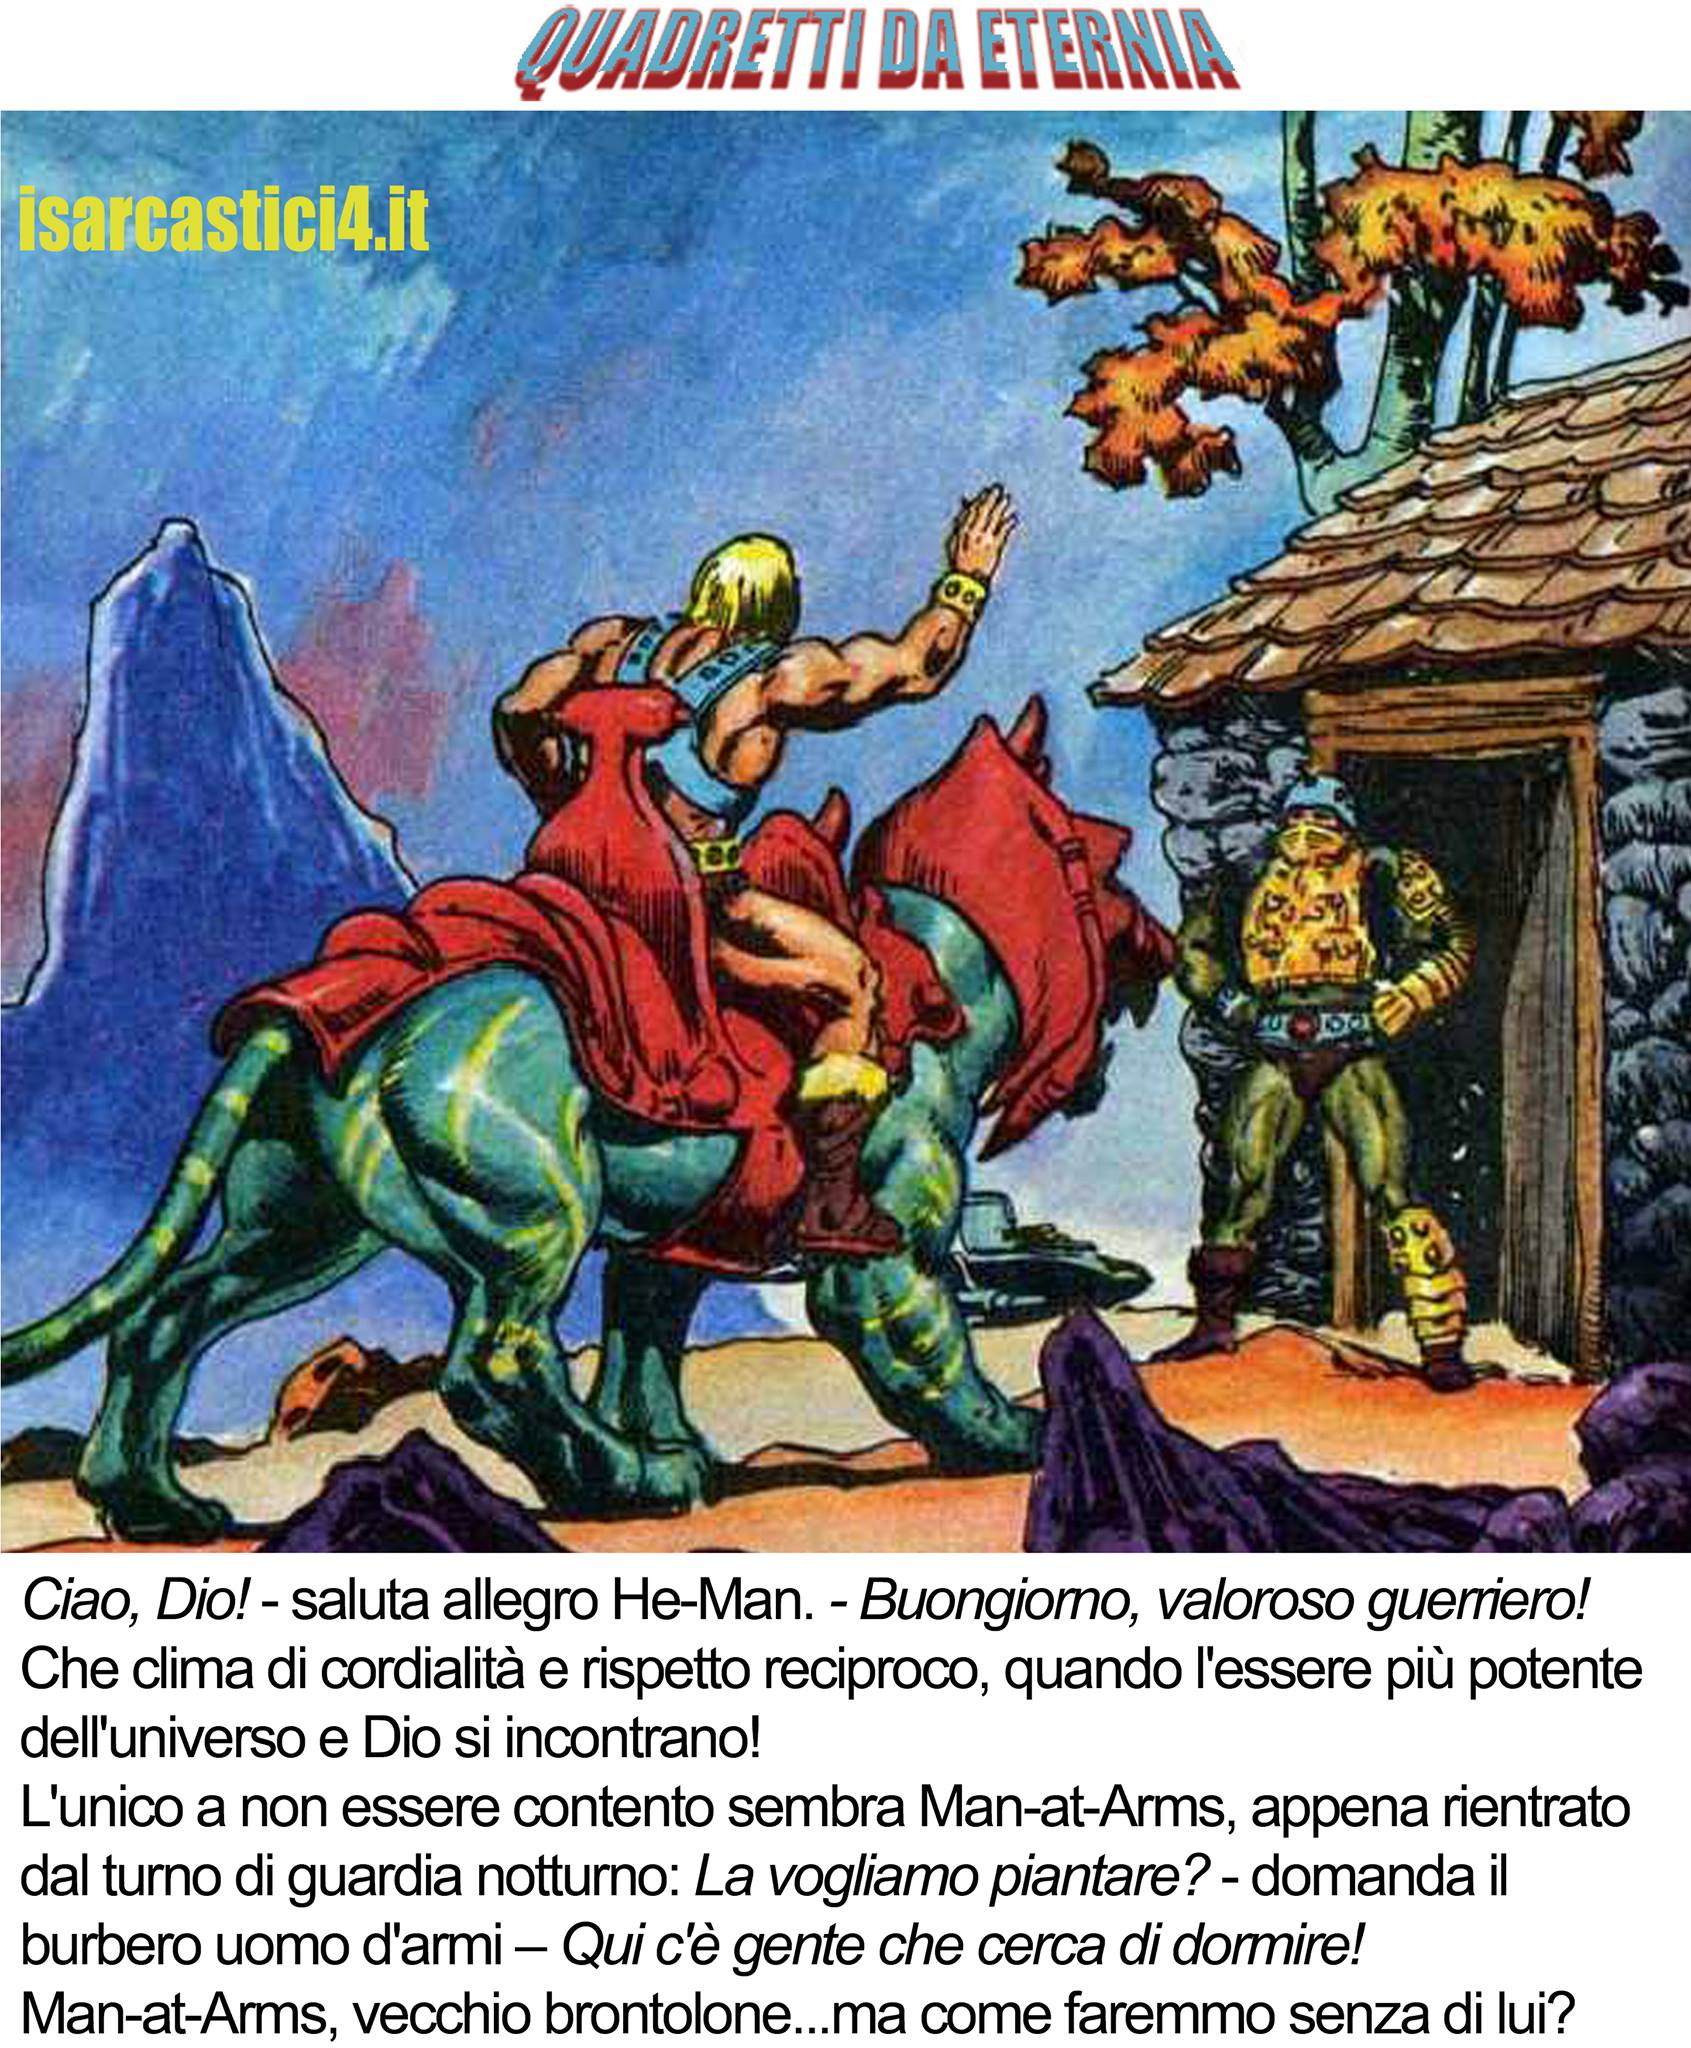 MOTU, Masters Of The Universe meme ita - Quadretti di Eternia